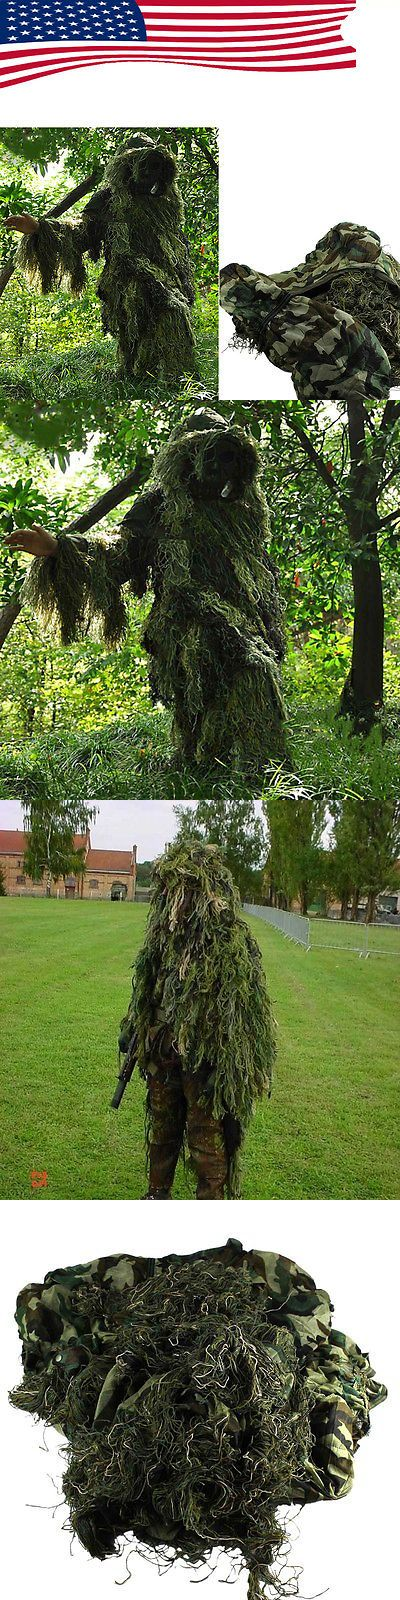 Ghillie Suits 177870: Set Camouflage Yowie Sniper Tactical Camo Suit Paintball Hunting Birding -> BUY IT NOW ONLY: $33.99 on eBay!